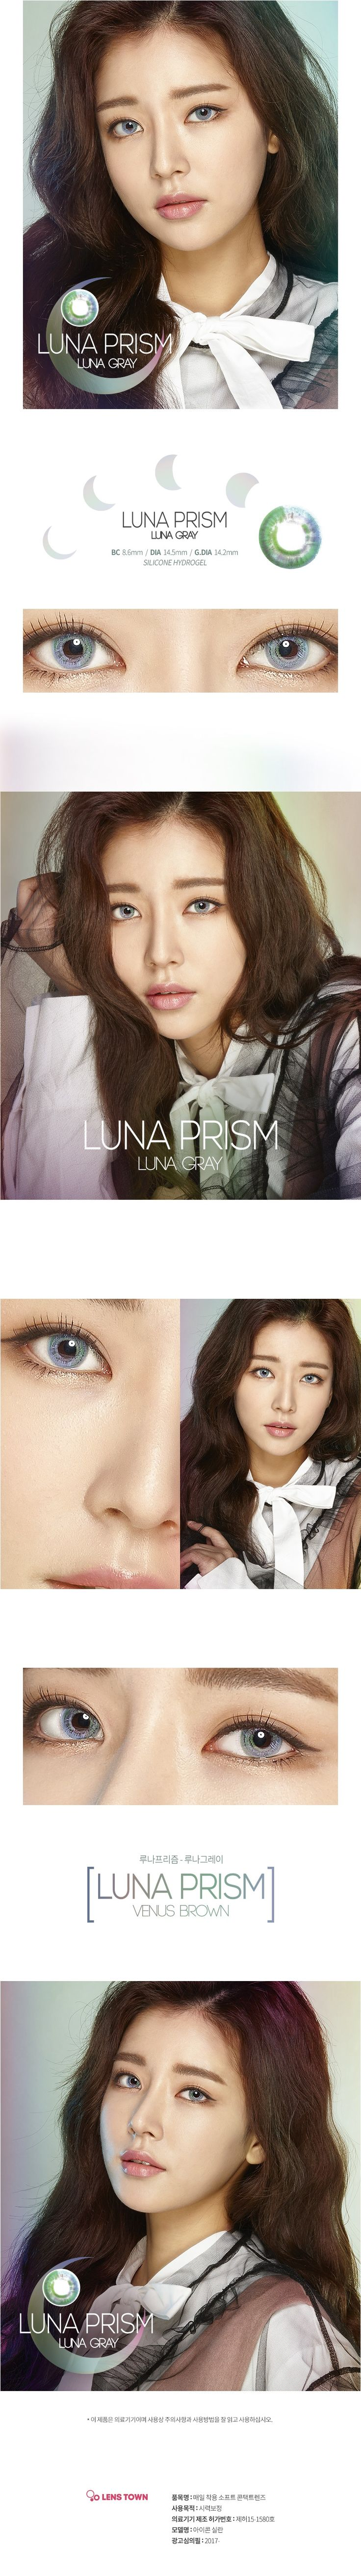 Luna Prism Luna Gray color lenses, prescription color lens, circle lens, cosmetic contact lenses / keautystore